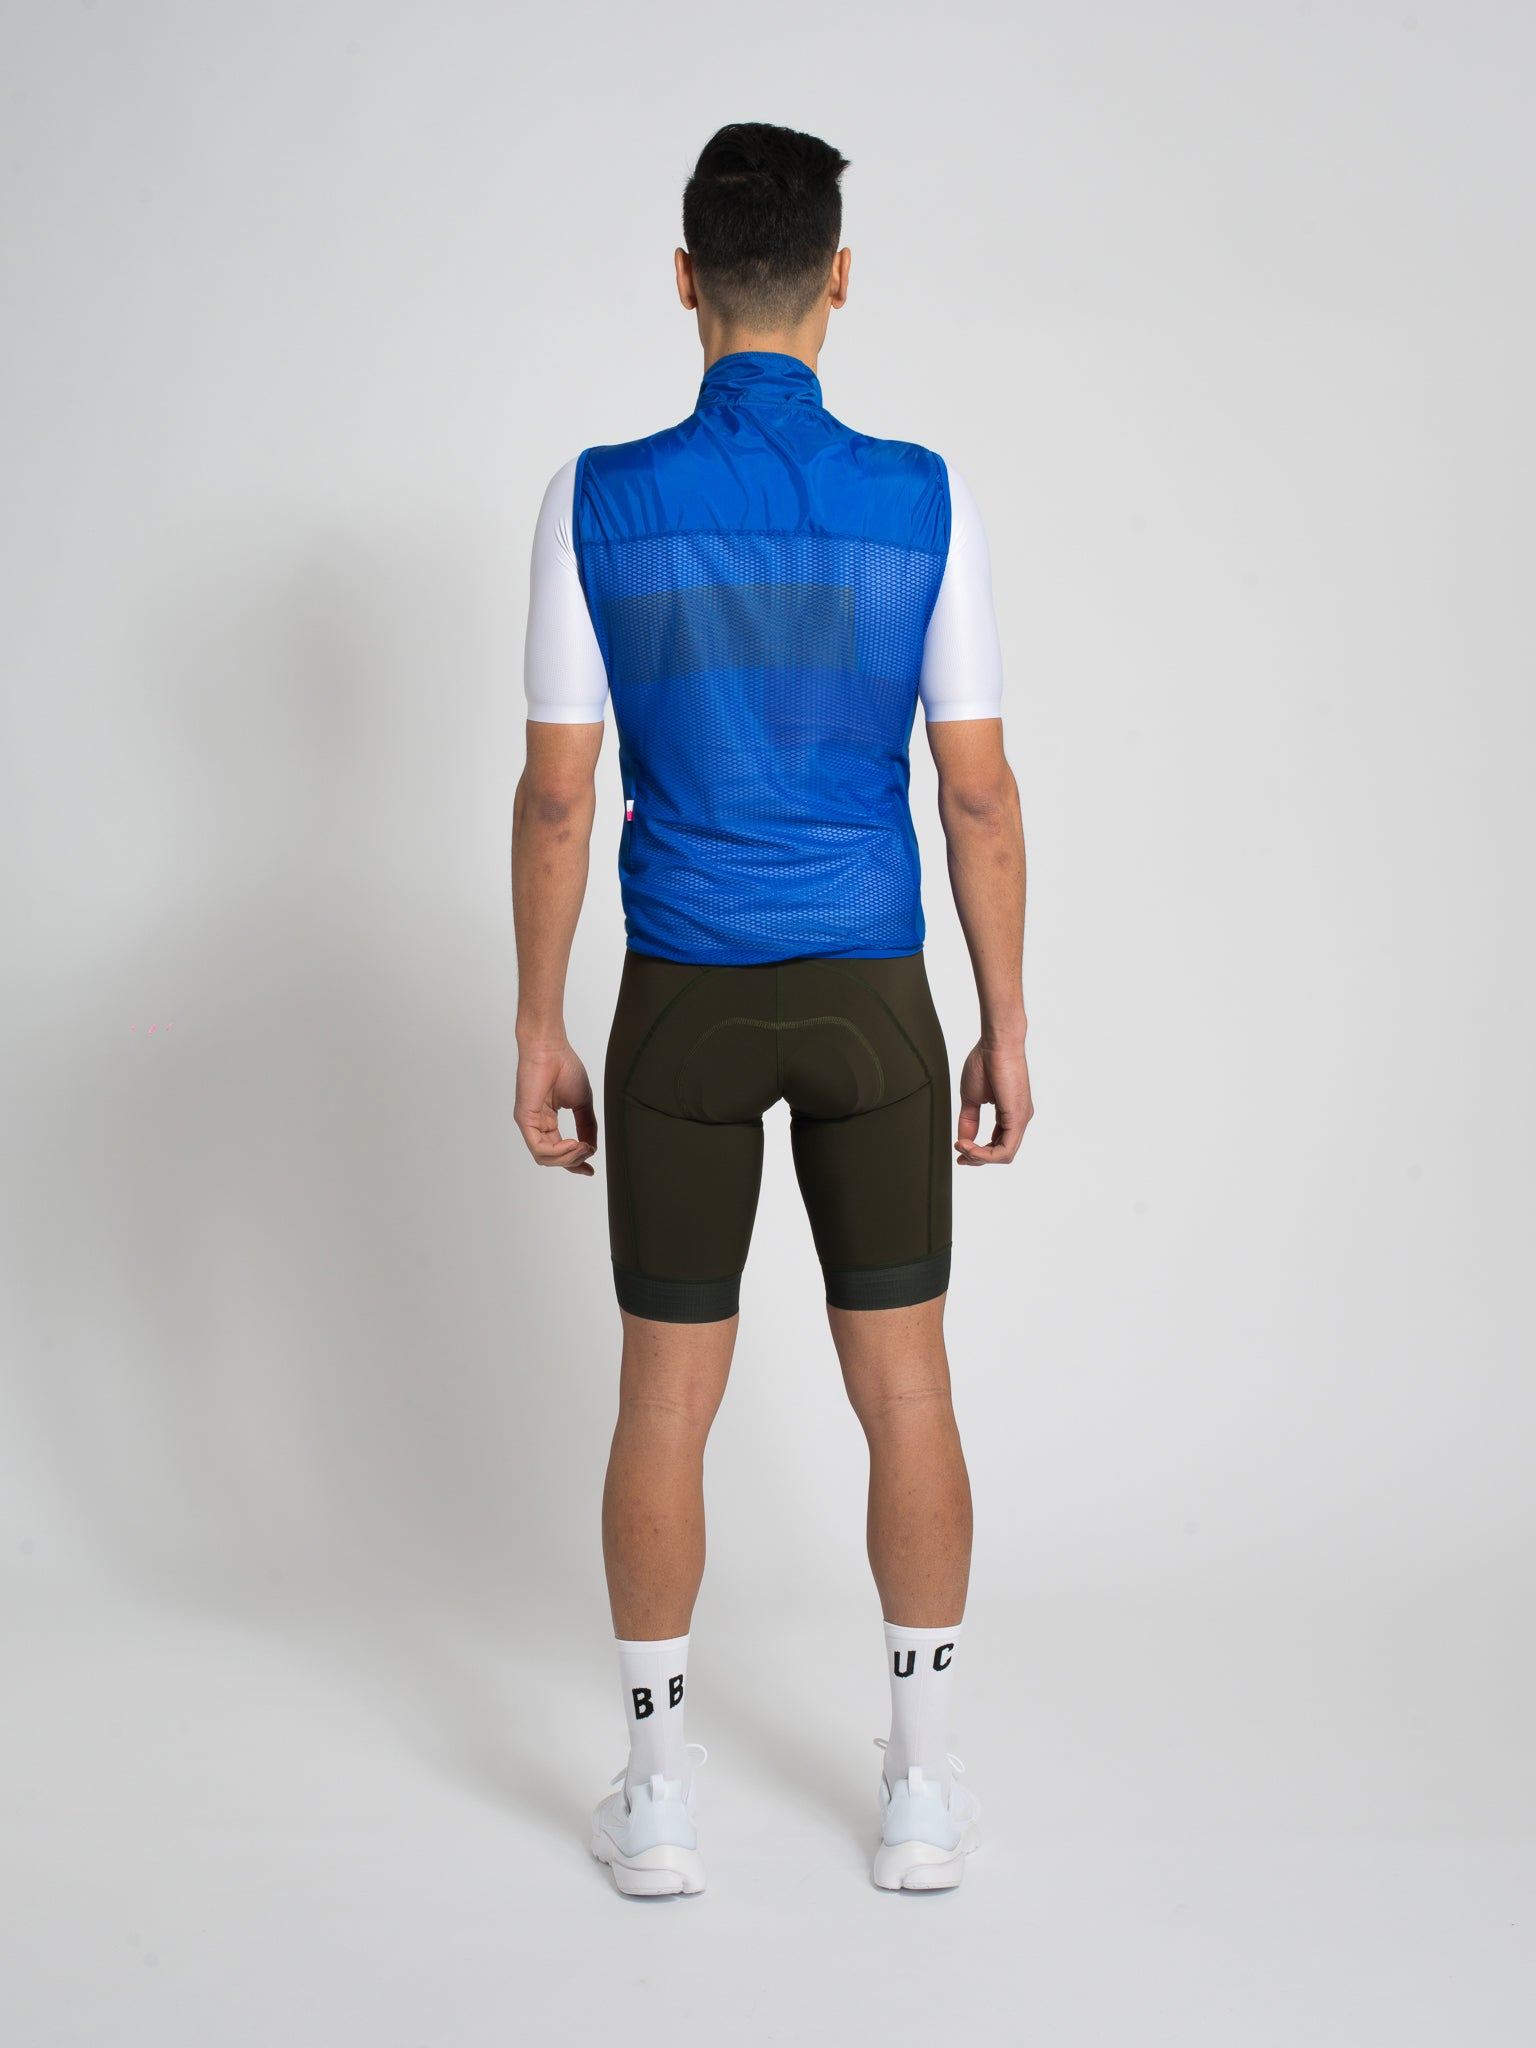 Minimalist blue cycling gilet/vest with bbuc logo